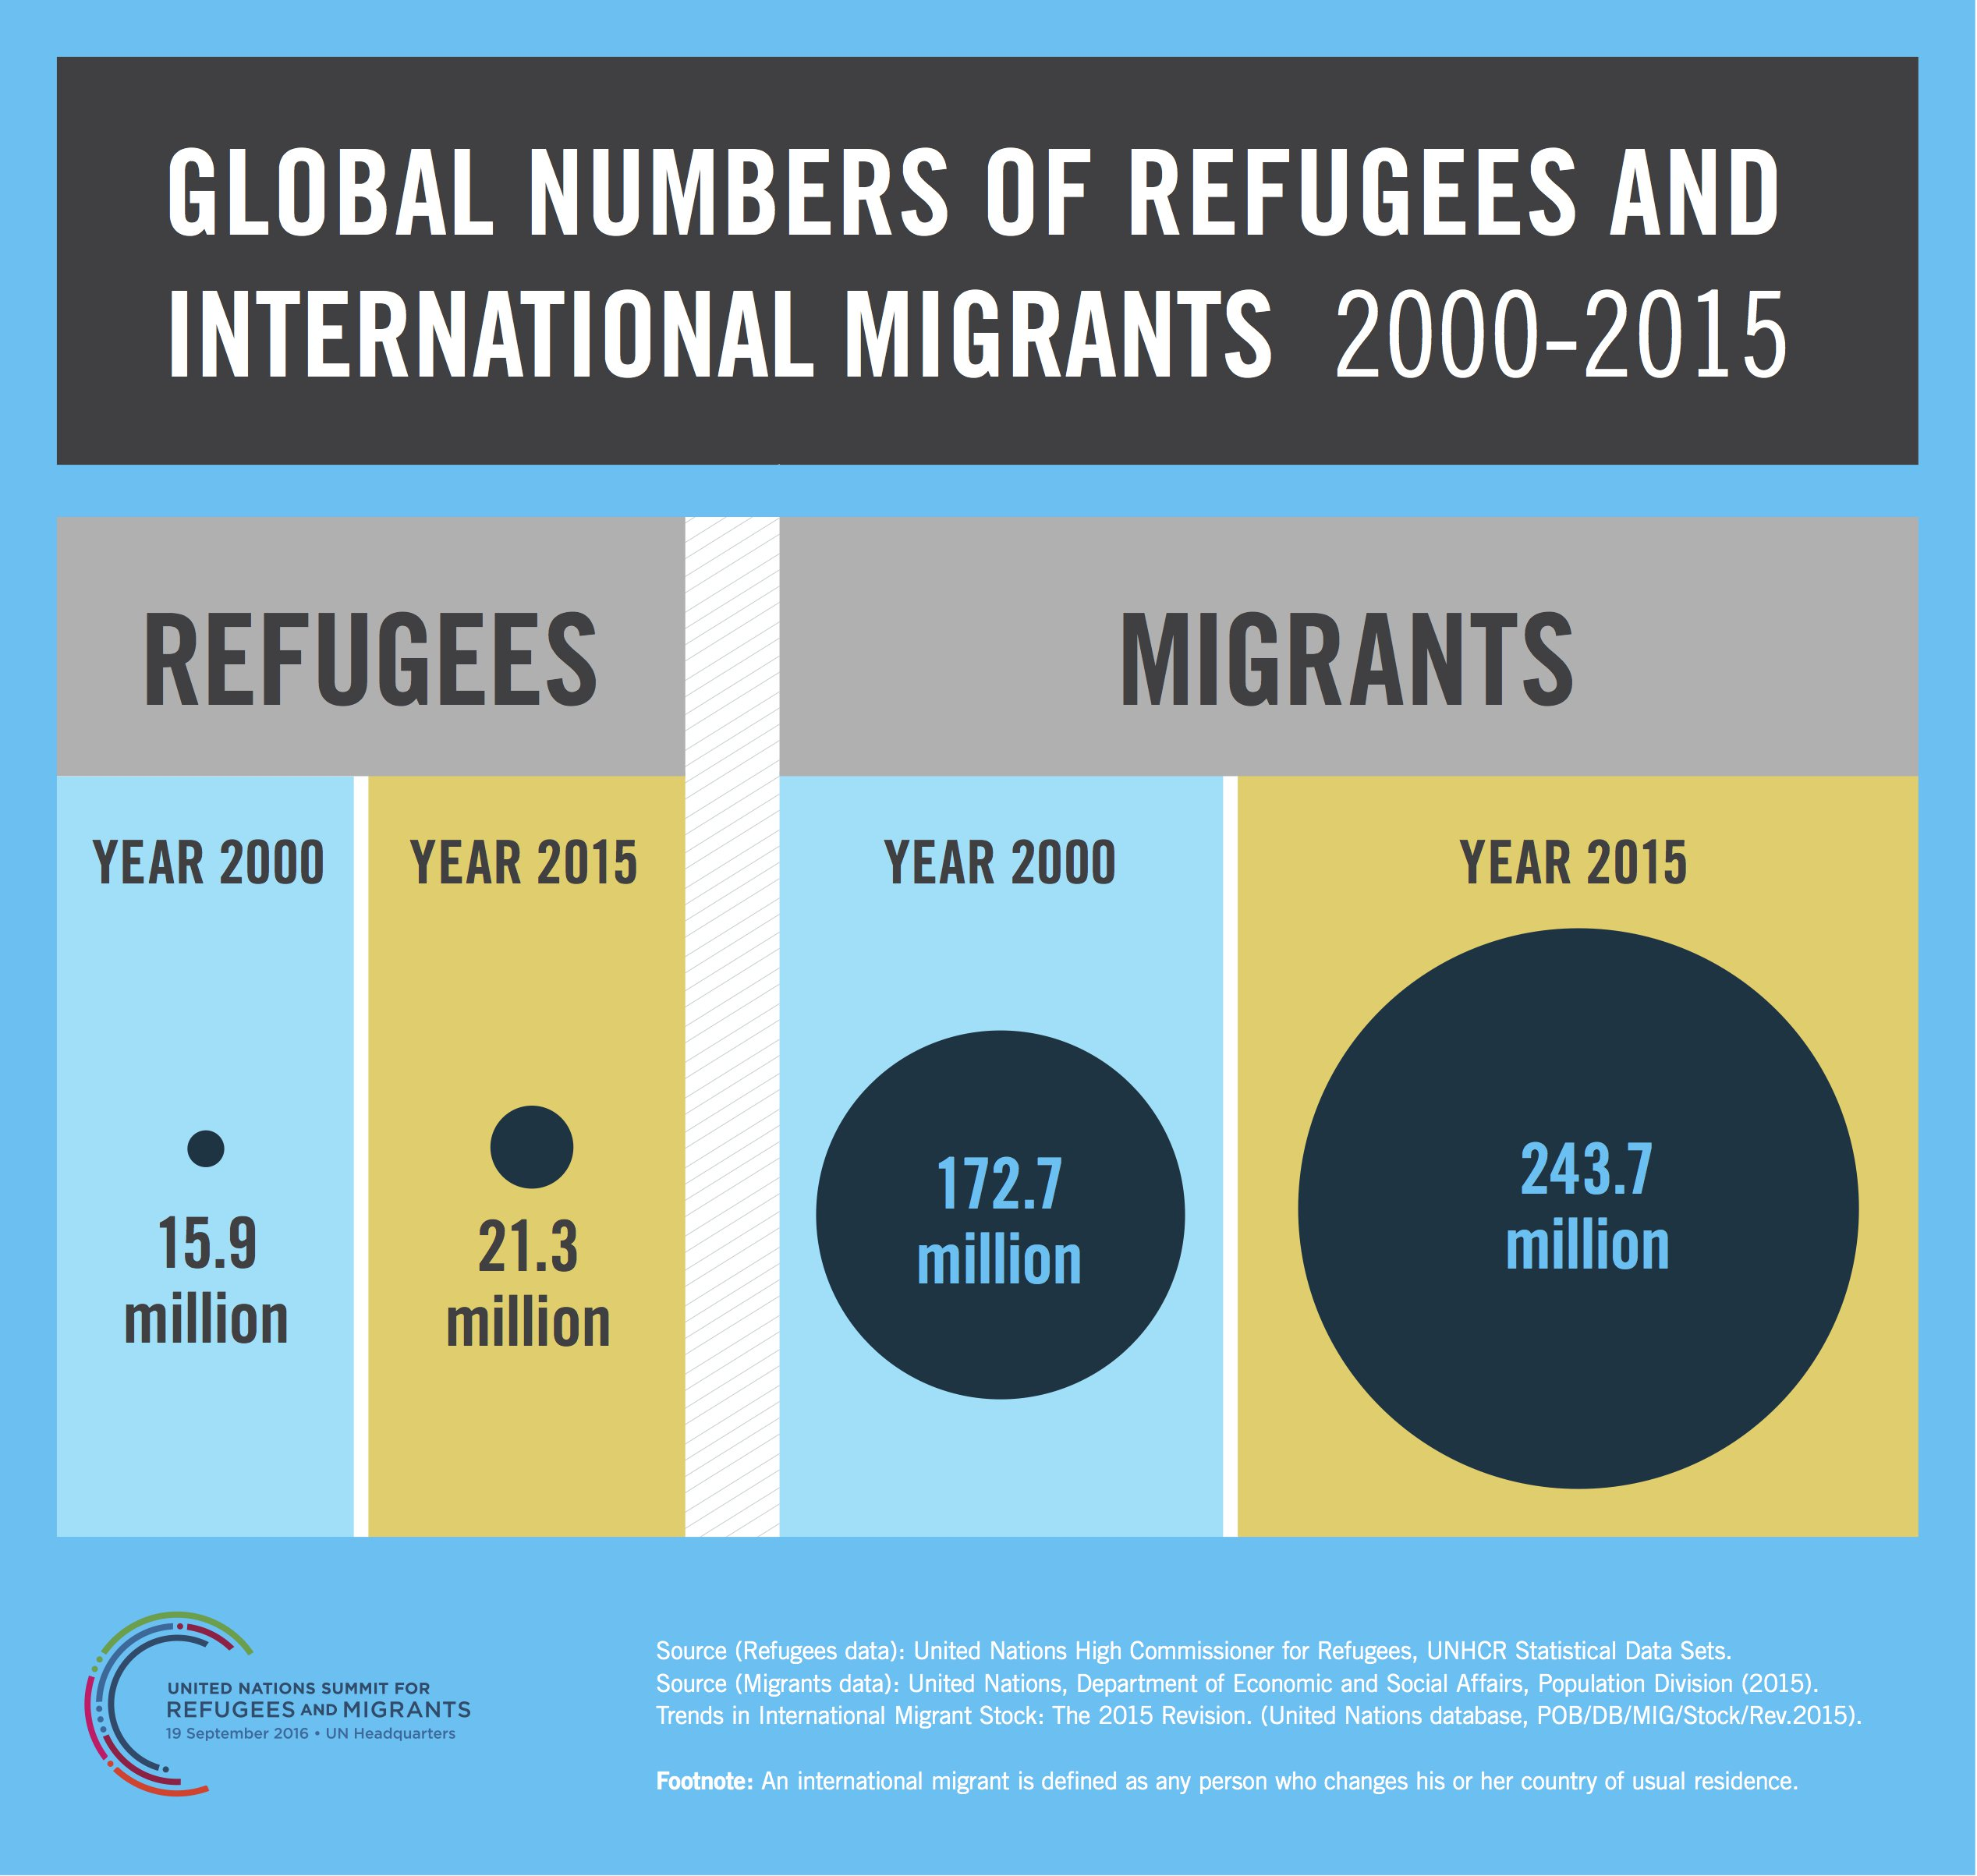 Infographic: global numbers of refugees and international migrants 2000-2015